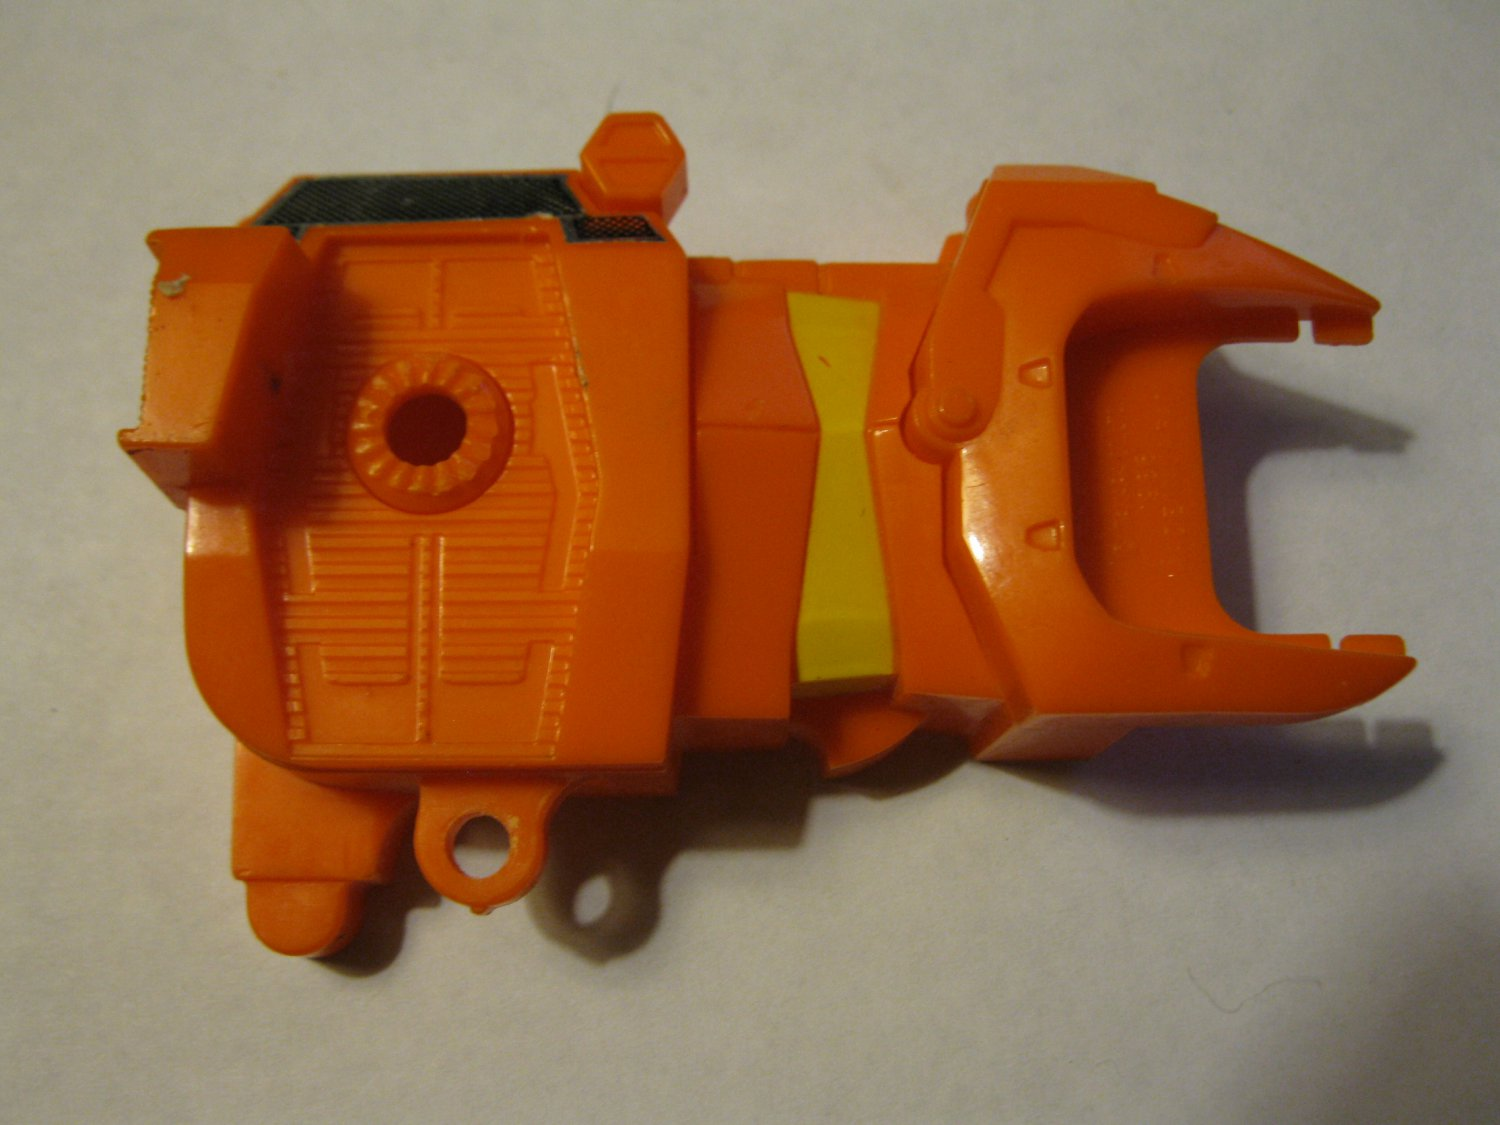 G1 Transformers Action figure part: 1986 Tantrum - Left Side Exterior Body Section